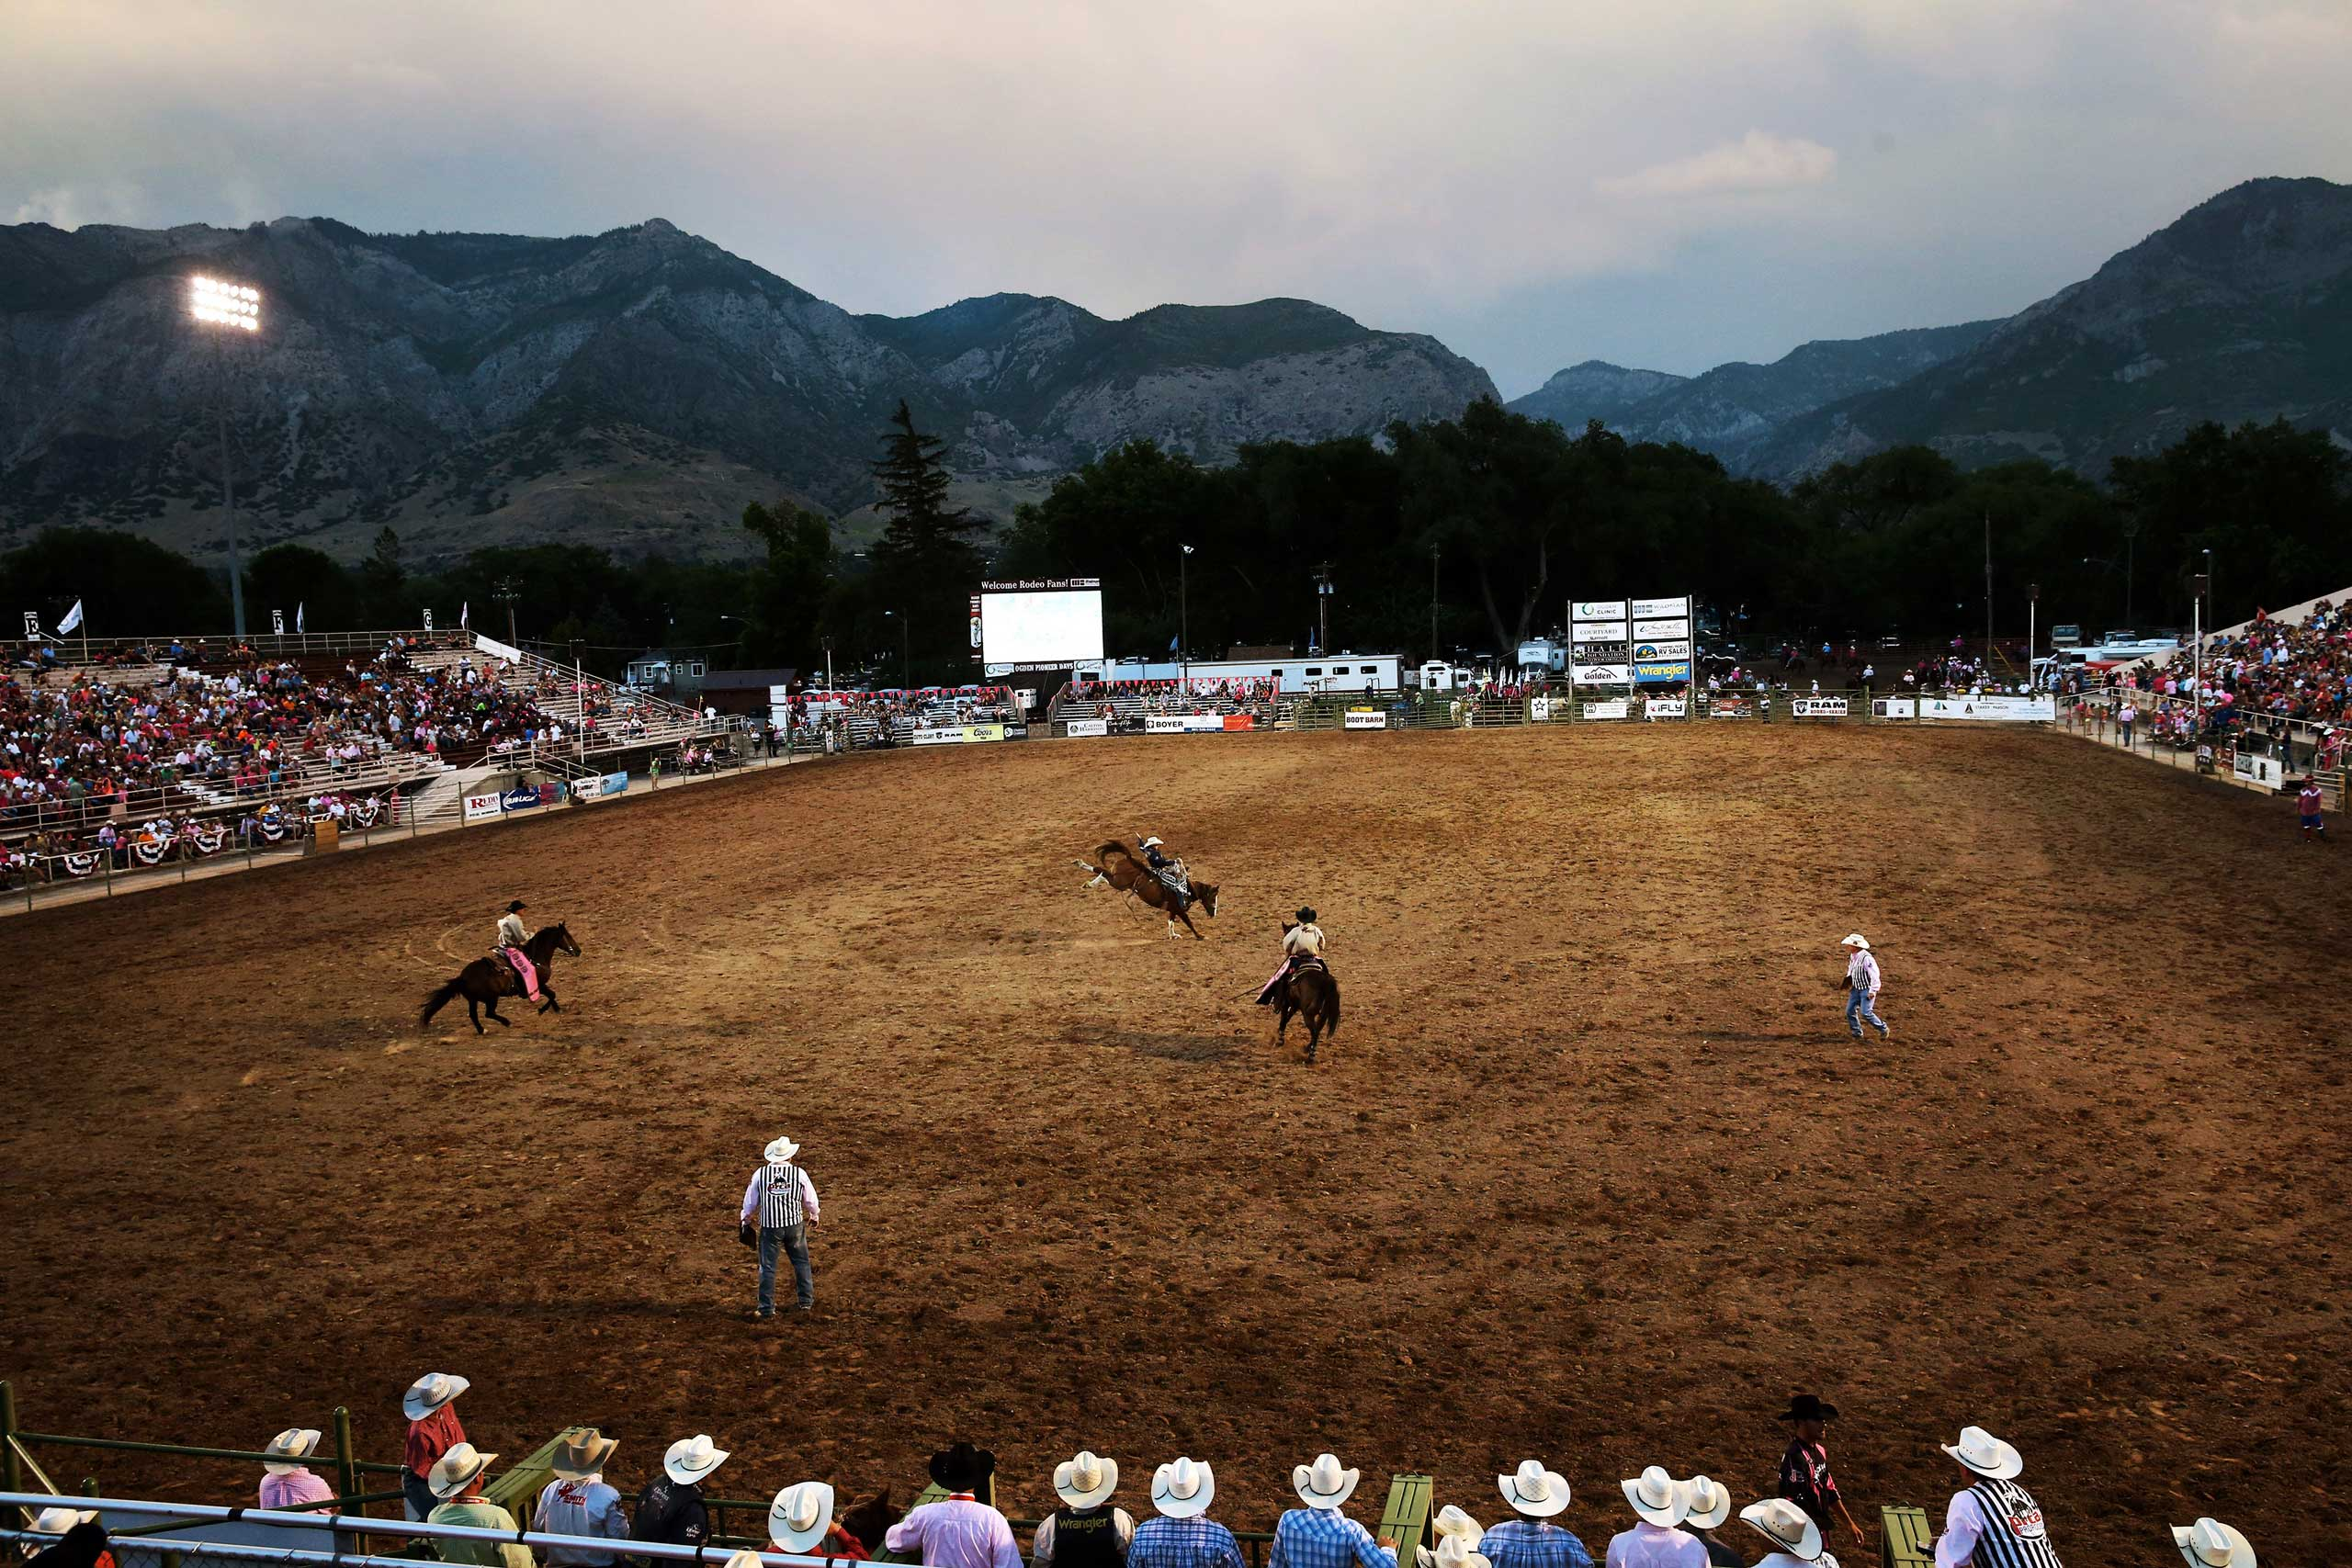 The New York Times: The Ride of Their LivesA rodeo event in which members of the Wright family competed in at Ogden Pioneer Days in Ogden, Utah, July 22, 2014.